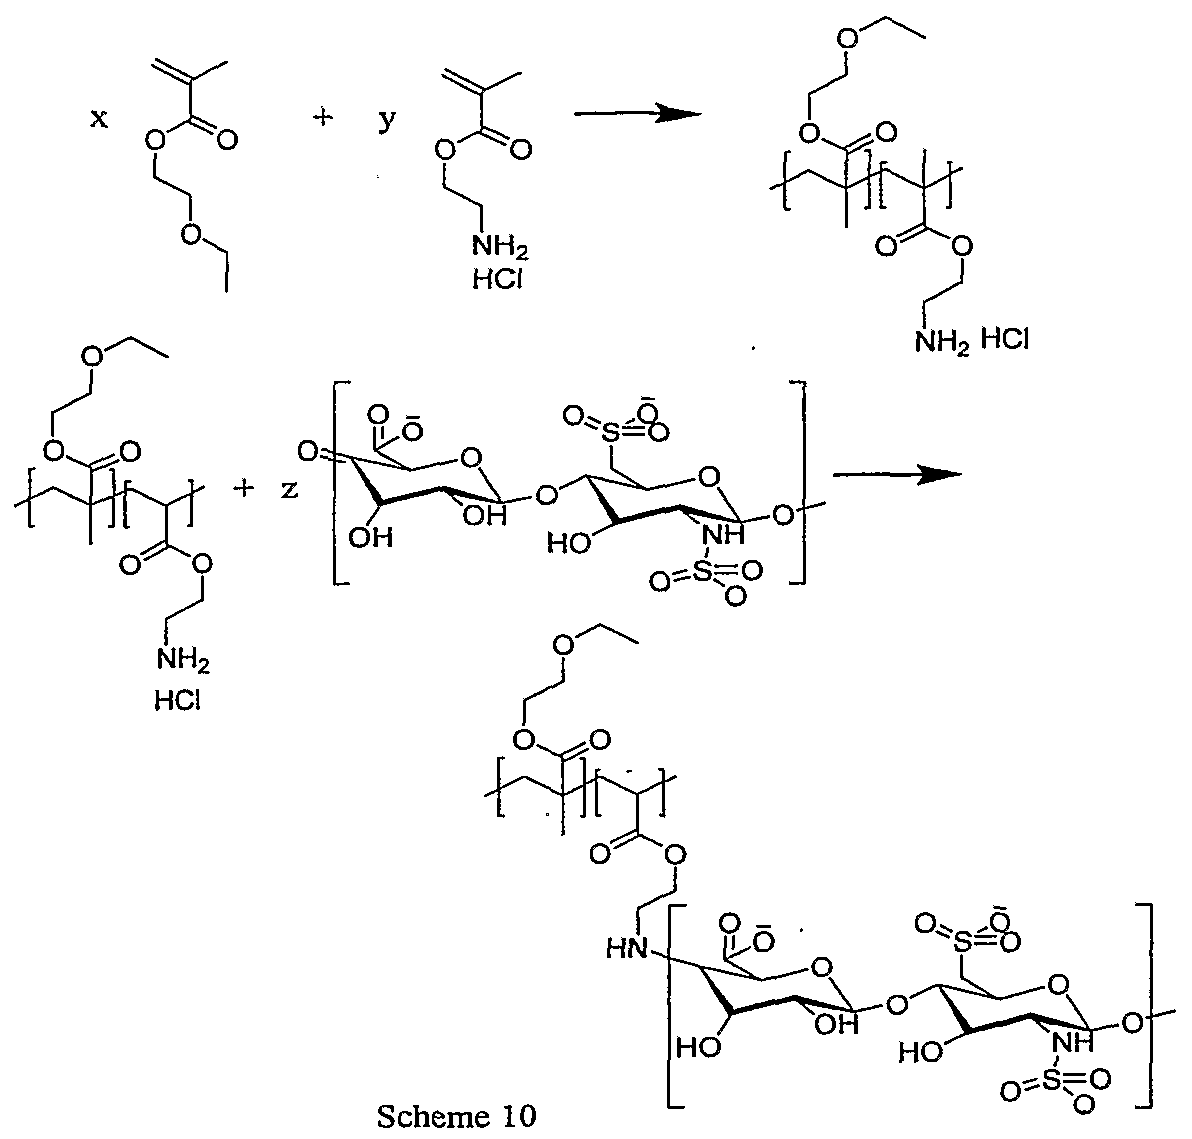 wo2005118018a1 heparin containing block copolymers coated on Engineered Products Heaters Fuh54b Model Shop figure imgf000027 0001